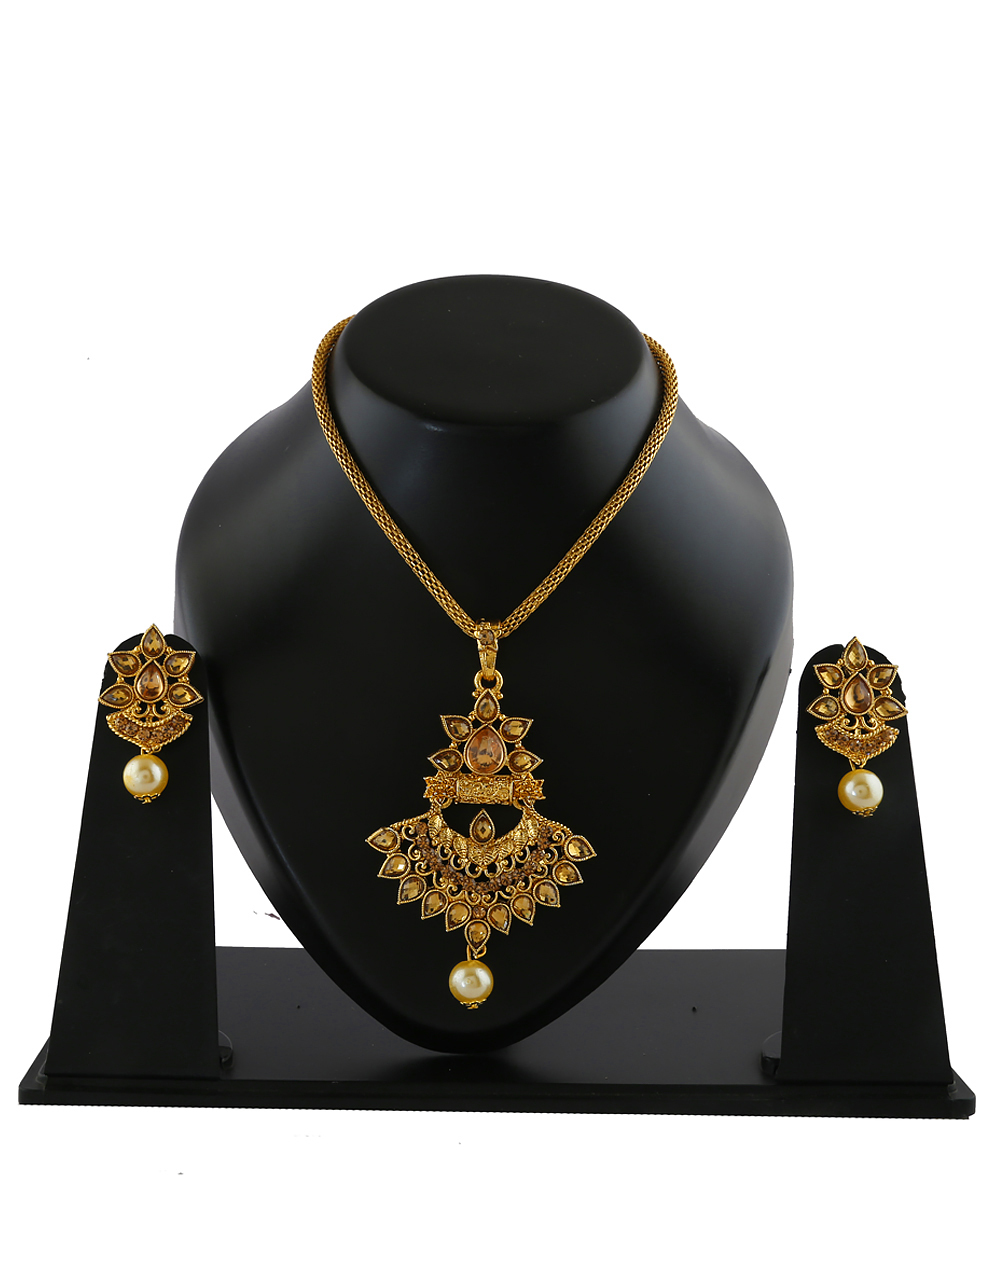 Antique Gold Finish Stunning Traditional Pendant Set